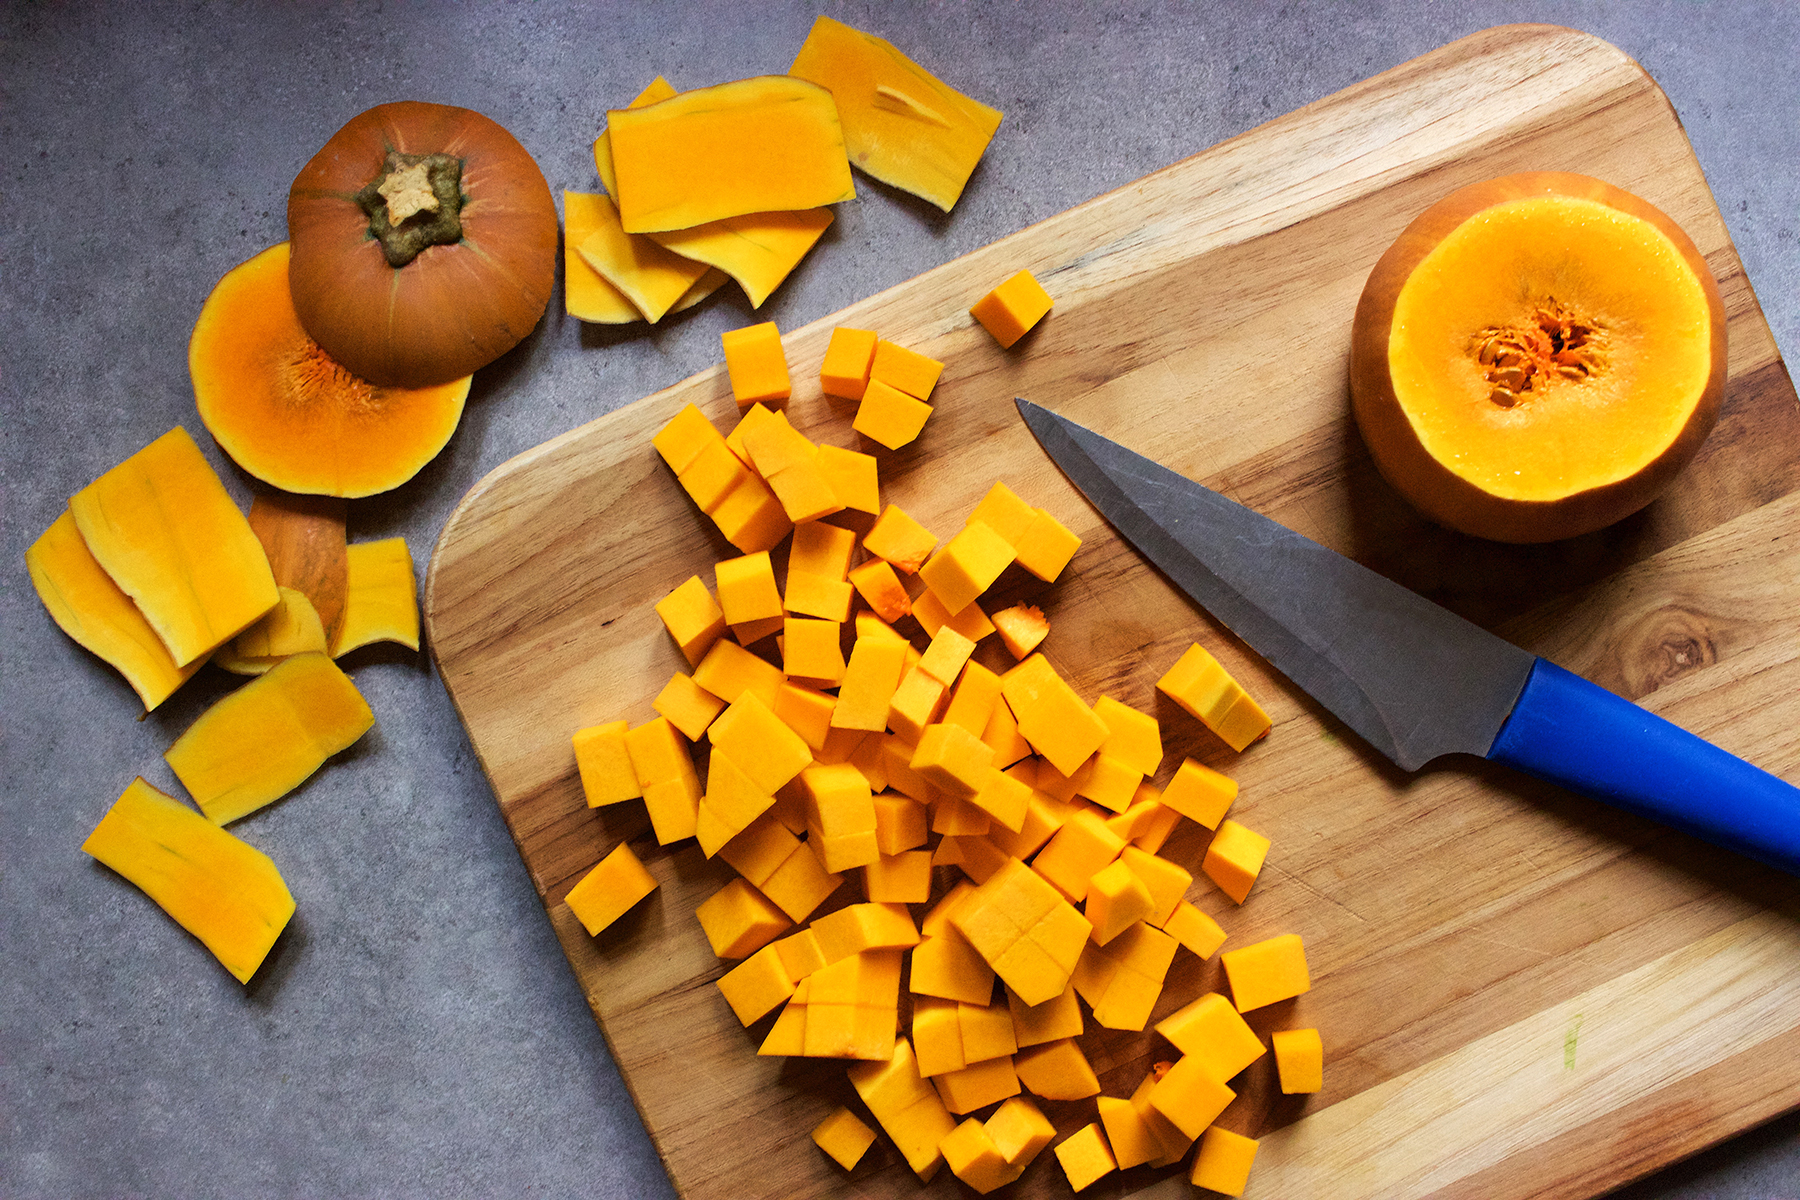 How to Cut a Butternut Squash in 4 Easy Steps (Without Losing a Finger)